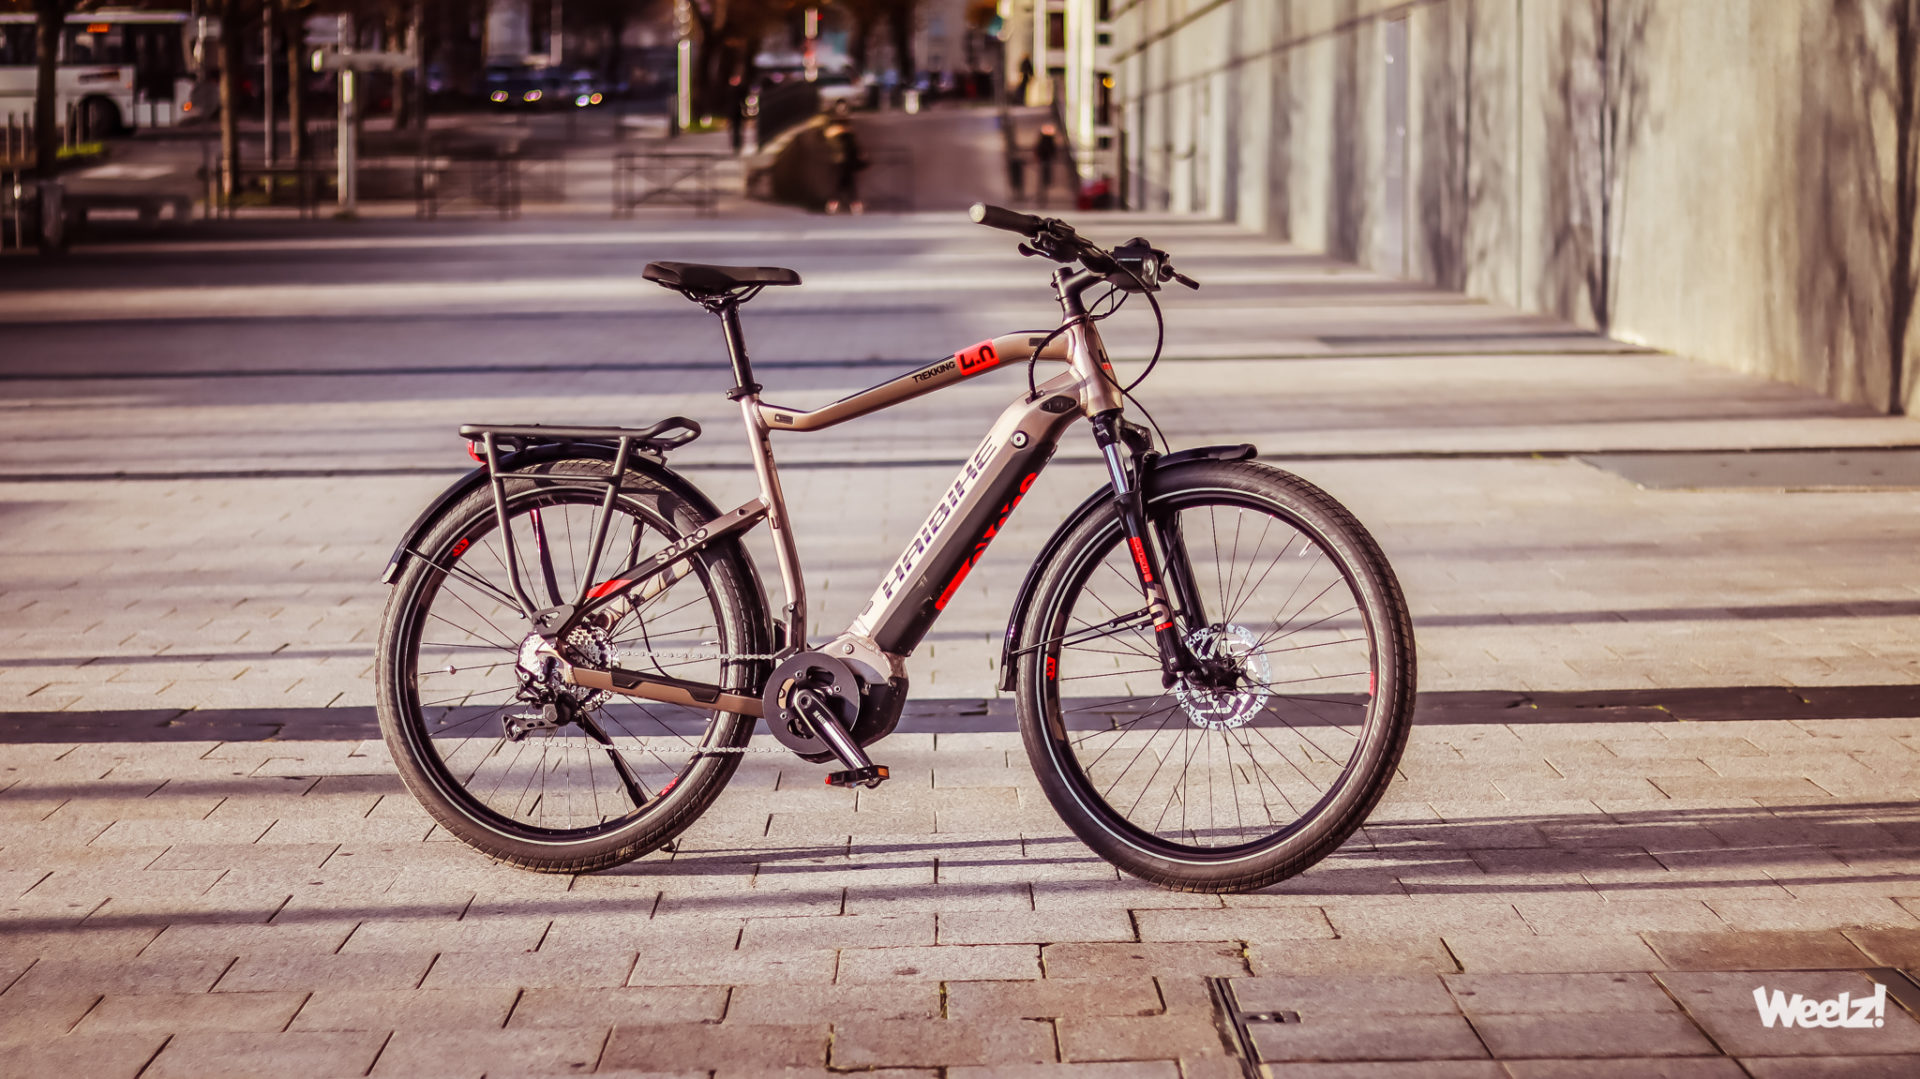 [Test] Vélo électrique Haibike SDURO Trekking, respect et robustesse